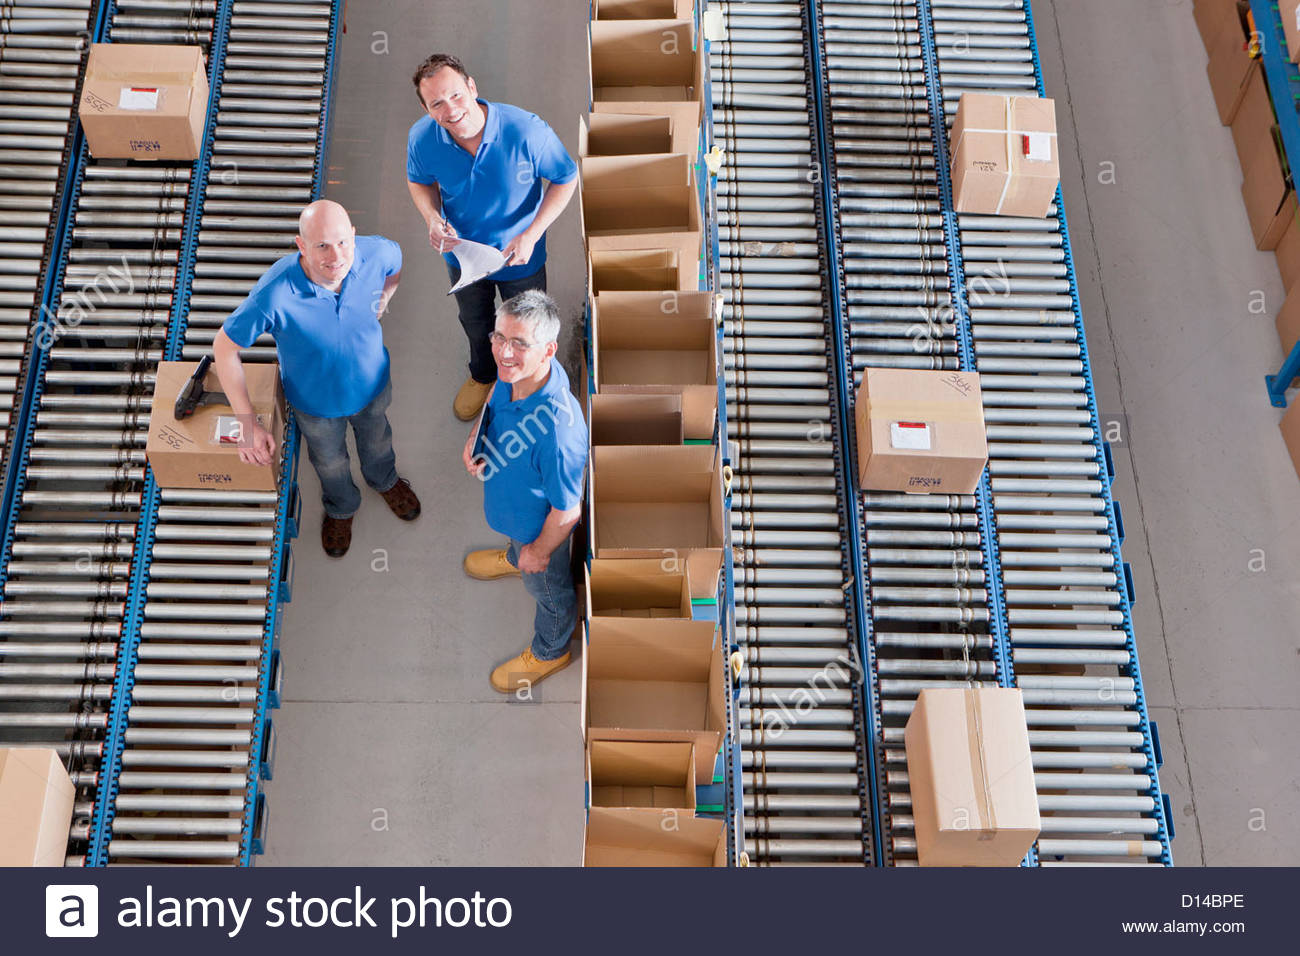 Portrait of smiling workers among boxes on conveyor belts in distribution warehouse - Stock Image